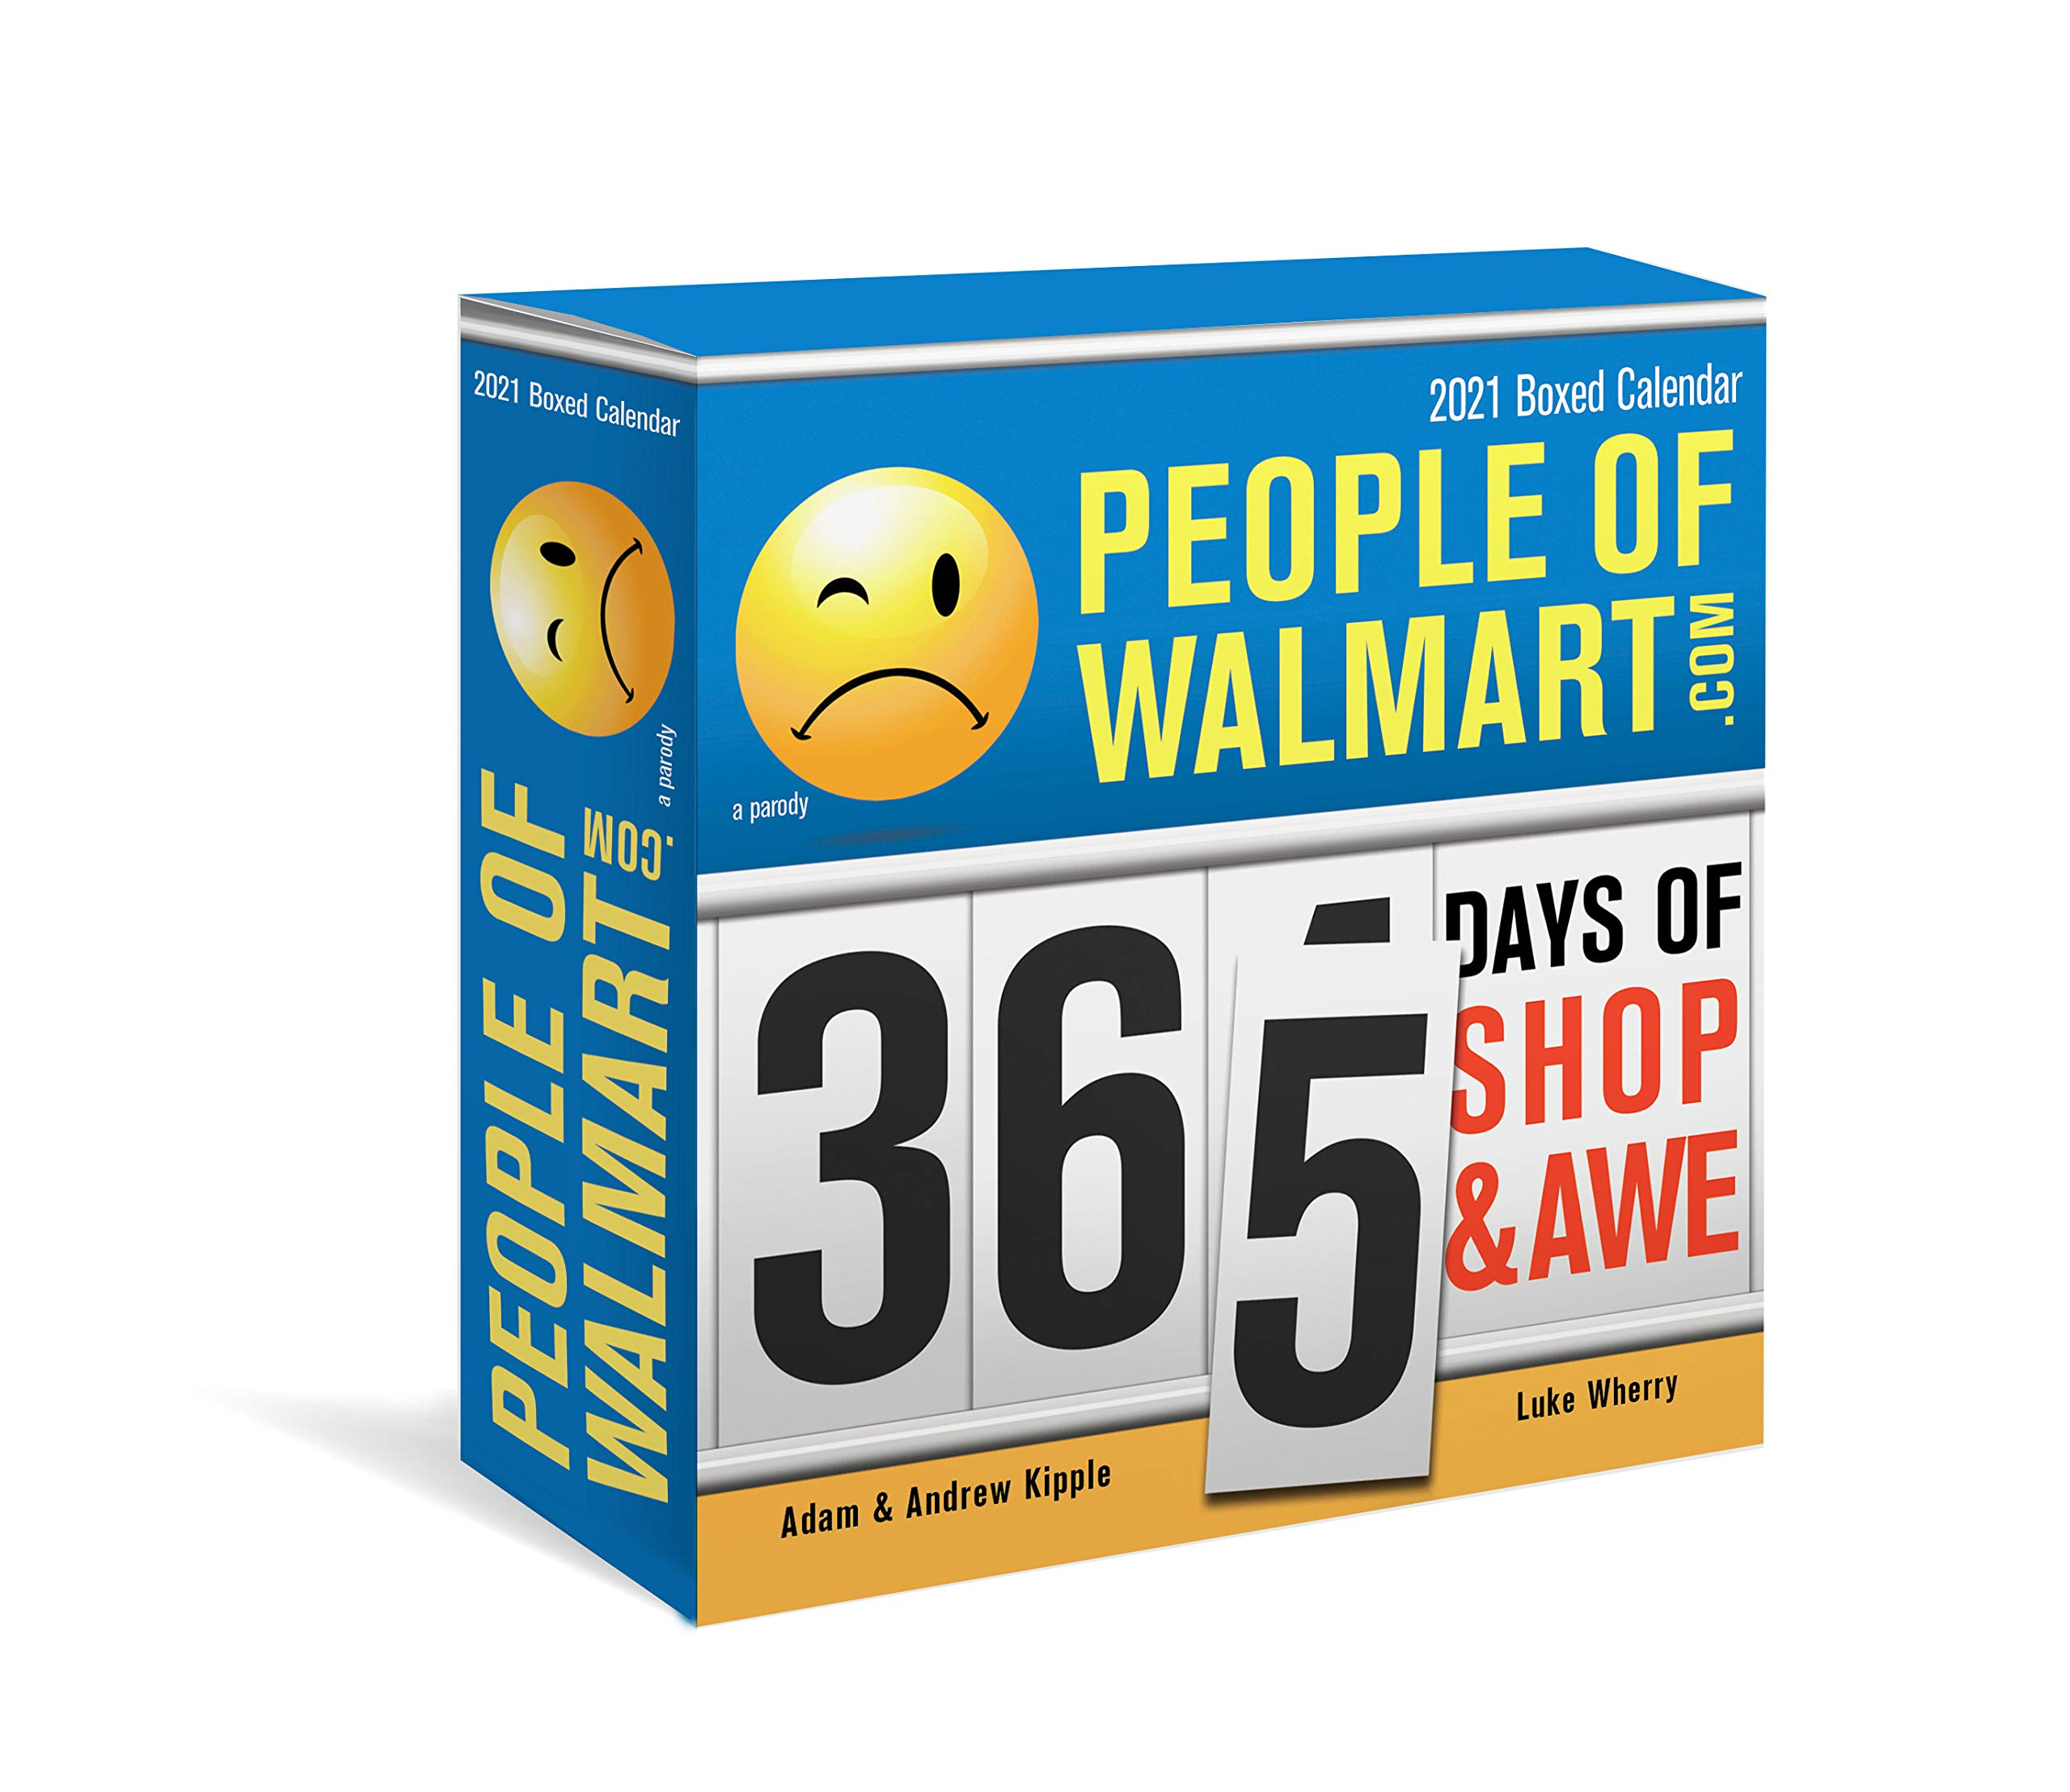 2021 People of Walmart Boxed Calendar: 365 Days of Shop and Awe